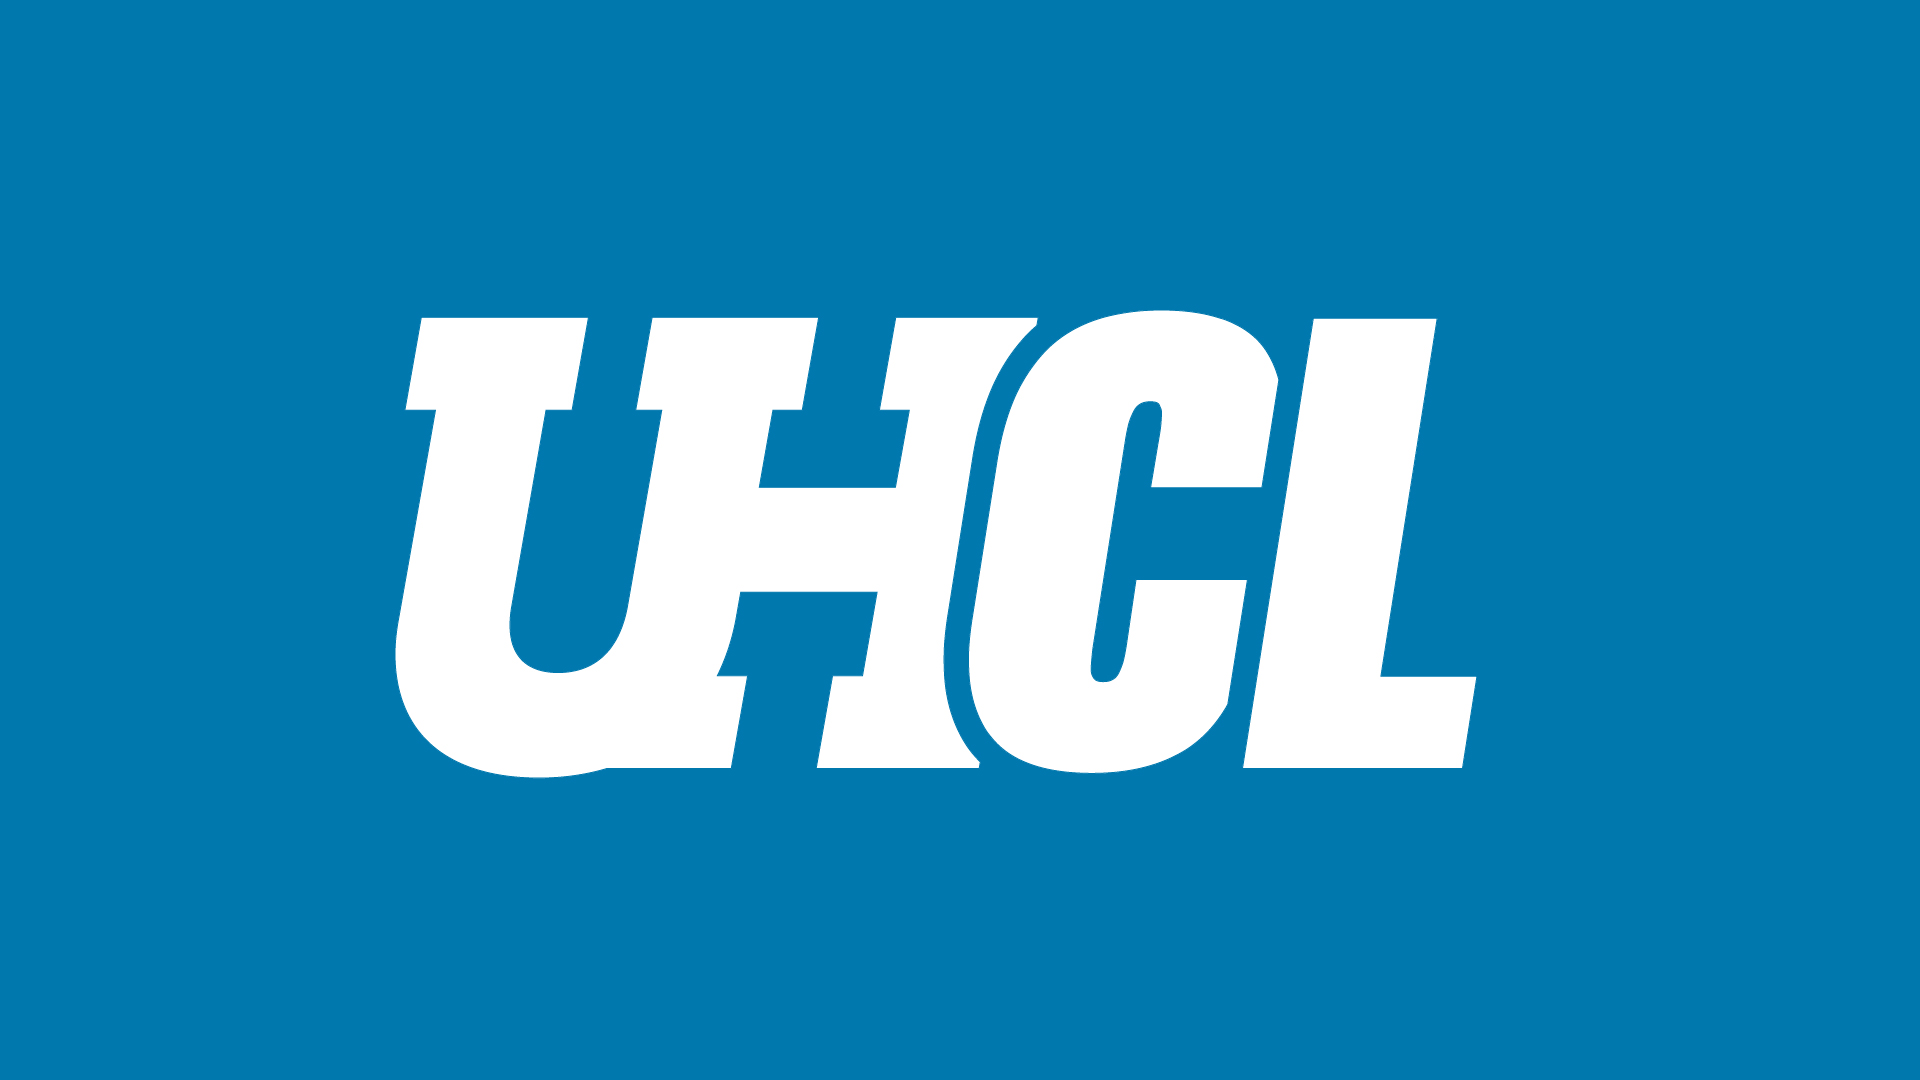 College-bound high school seniors accelerate college path at UHCL